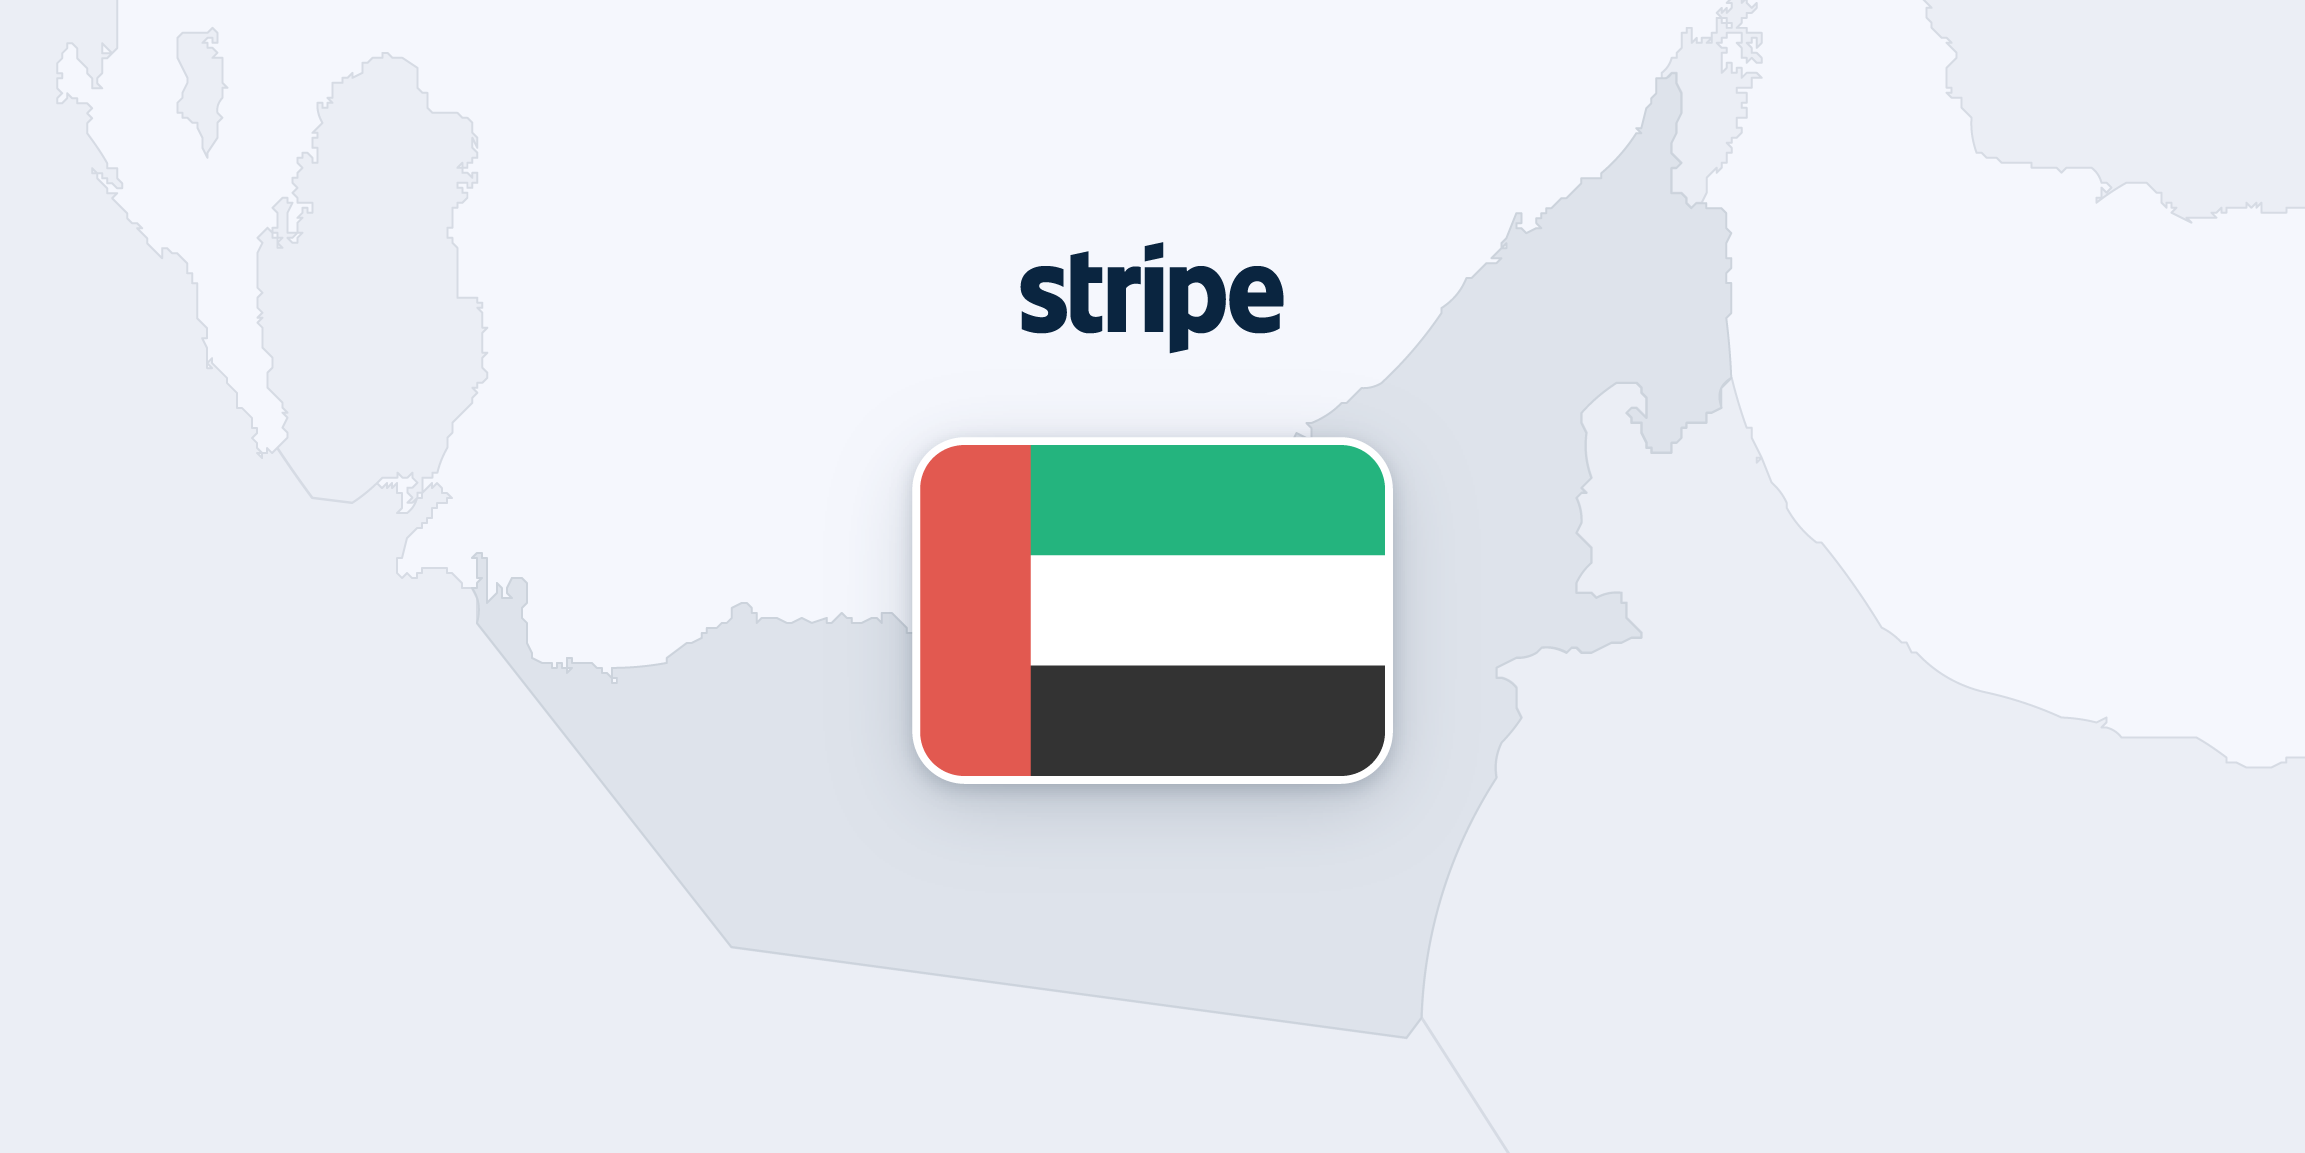 Stripe expands to the Middle East with UAE launch